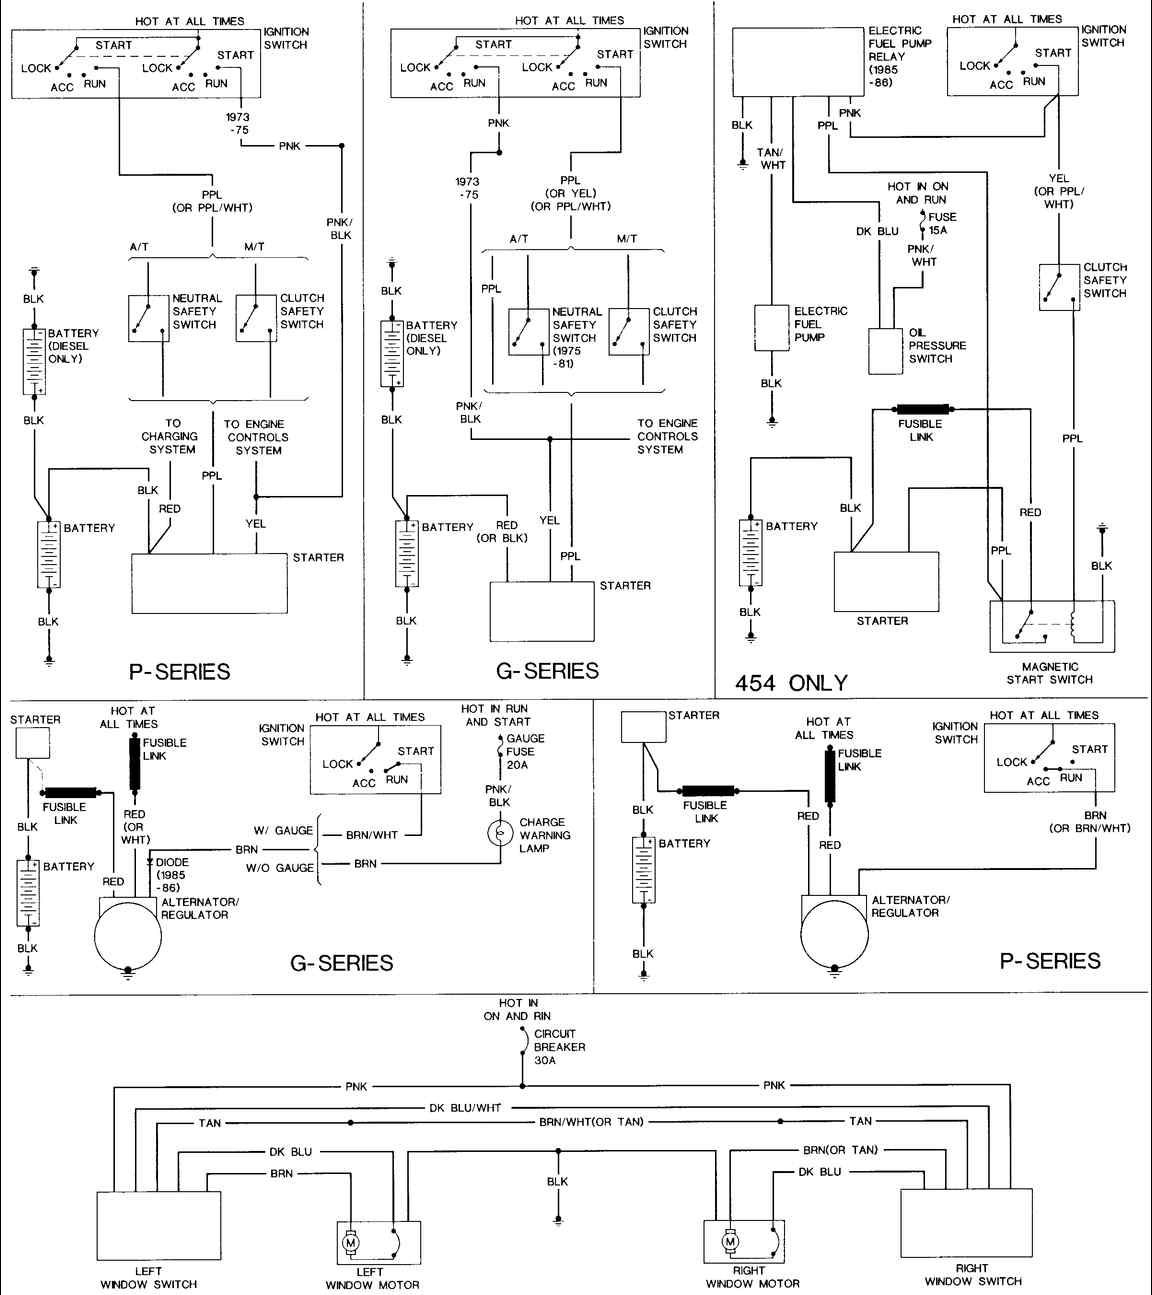 85 chevy truck wiring diagram 85 chevy van the steering column rh pinterest com 1991 Chevy Steering Column Diagram Chevy Truck Steering Column Diagram